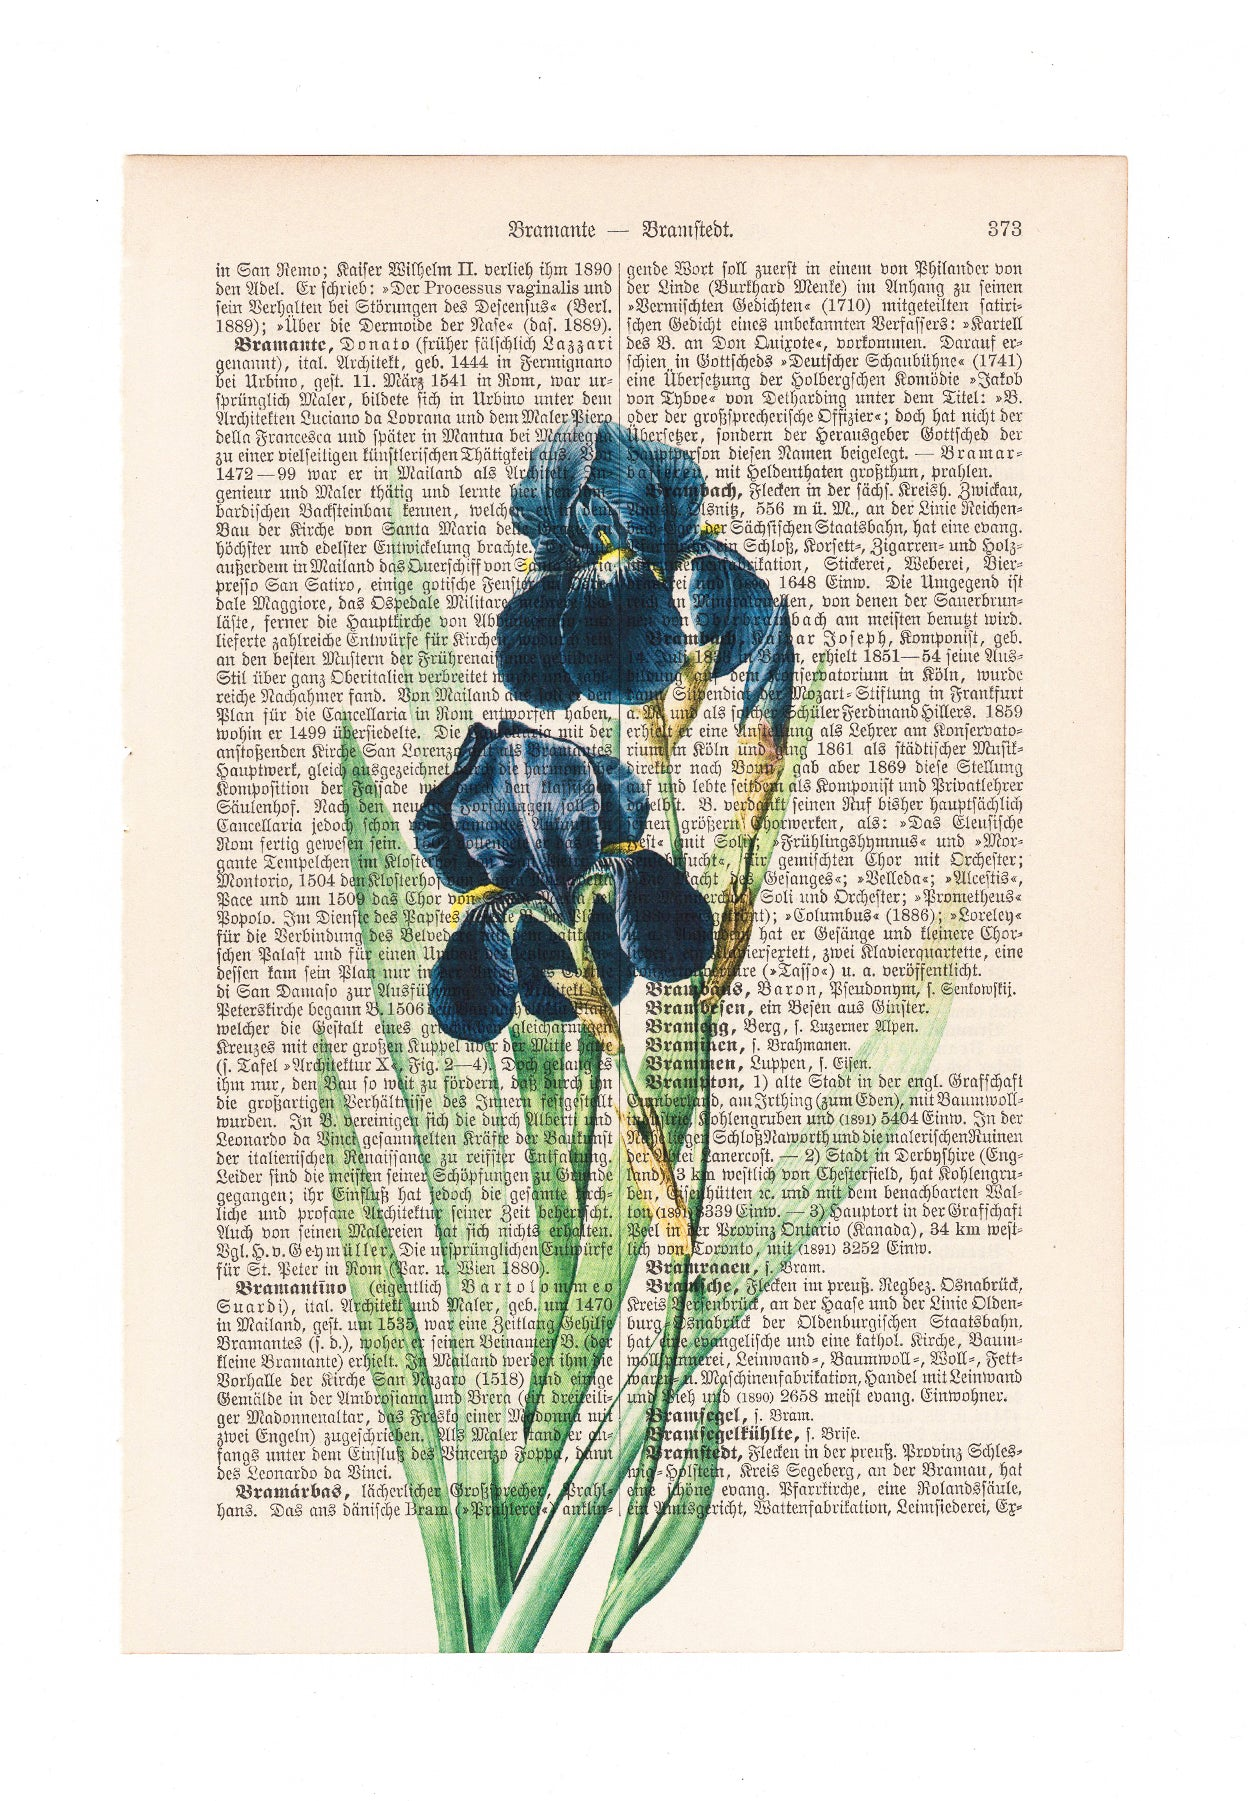 Iris - Flower - Art on Words